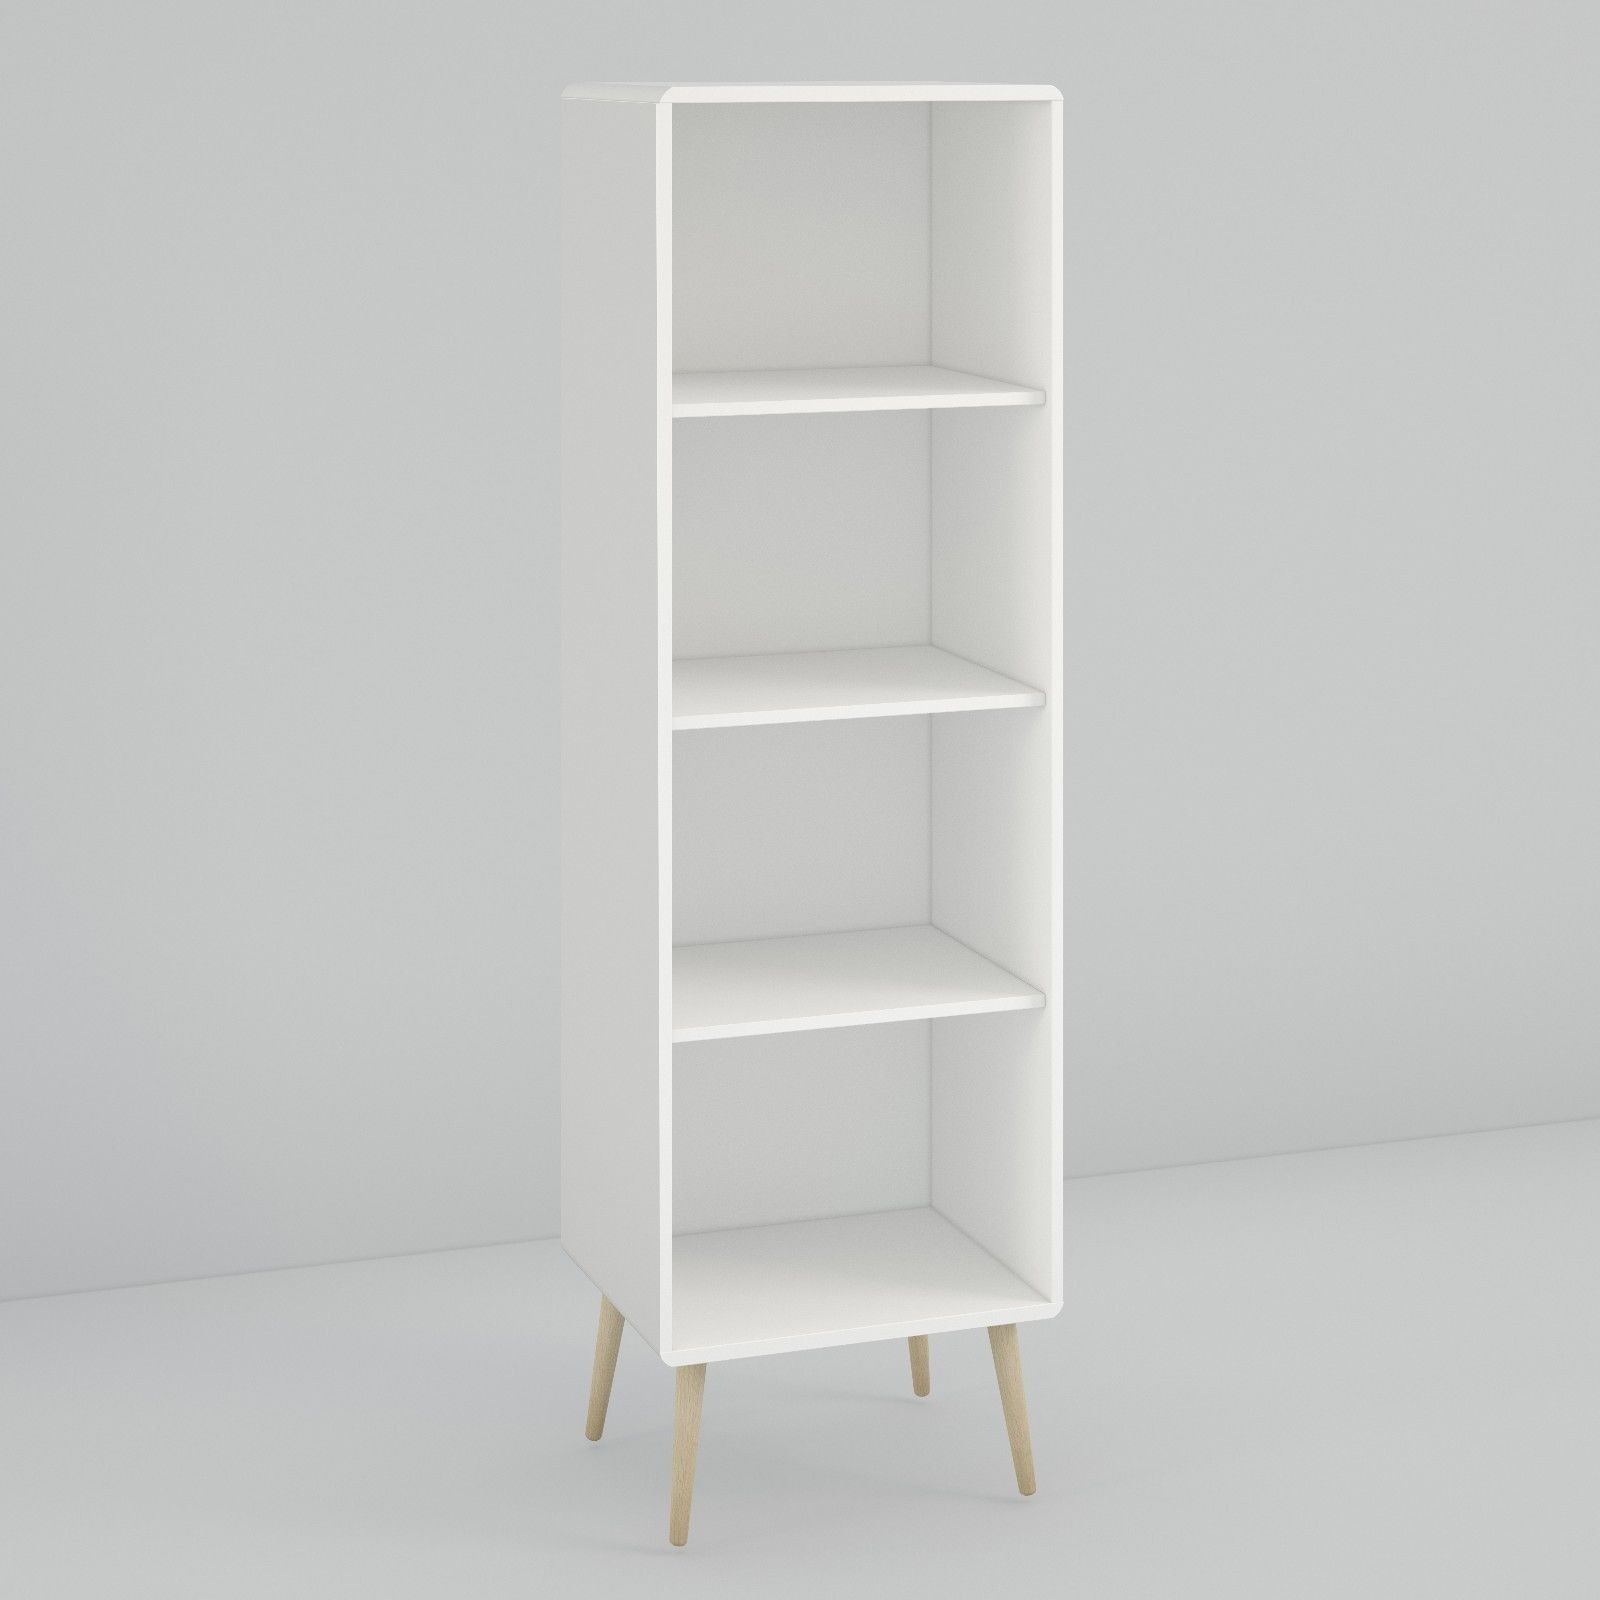 Steens soft line retro spindle style white tall narrow bookcase